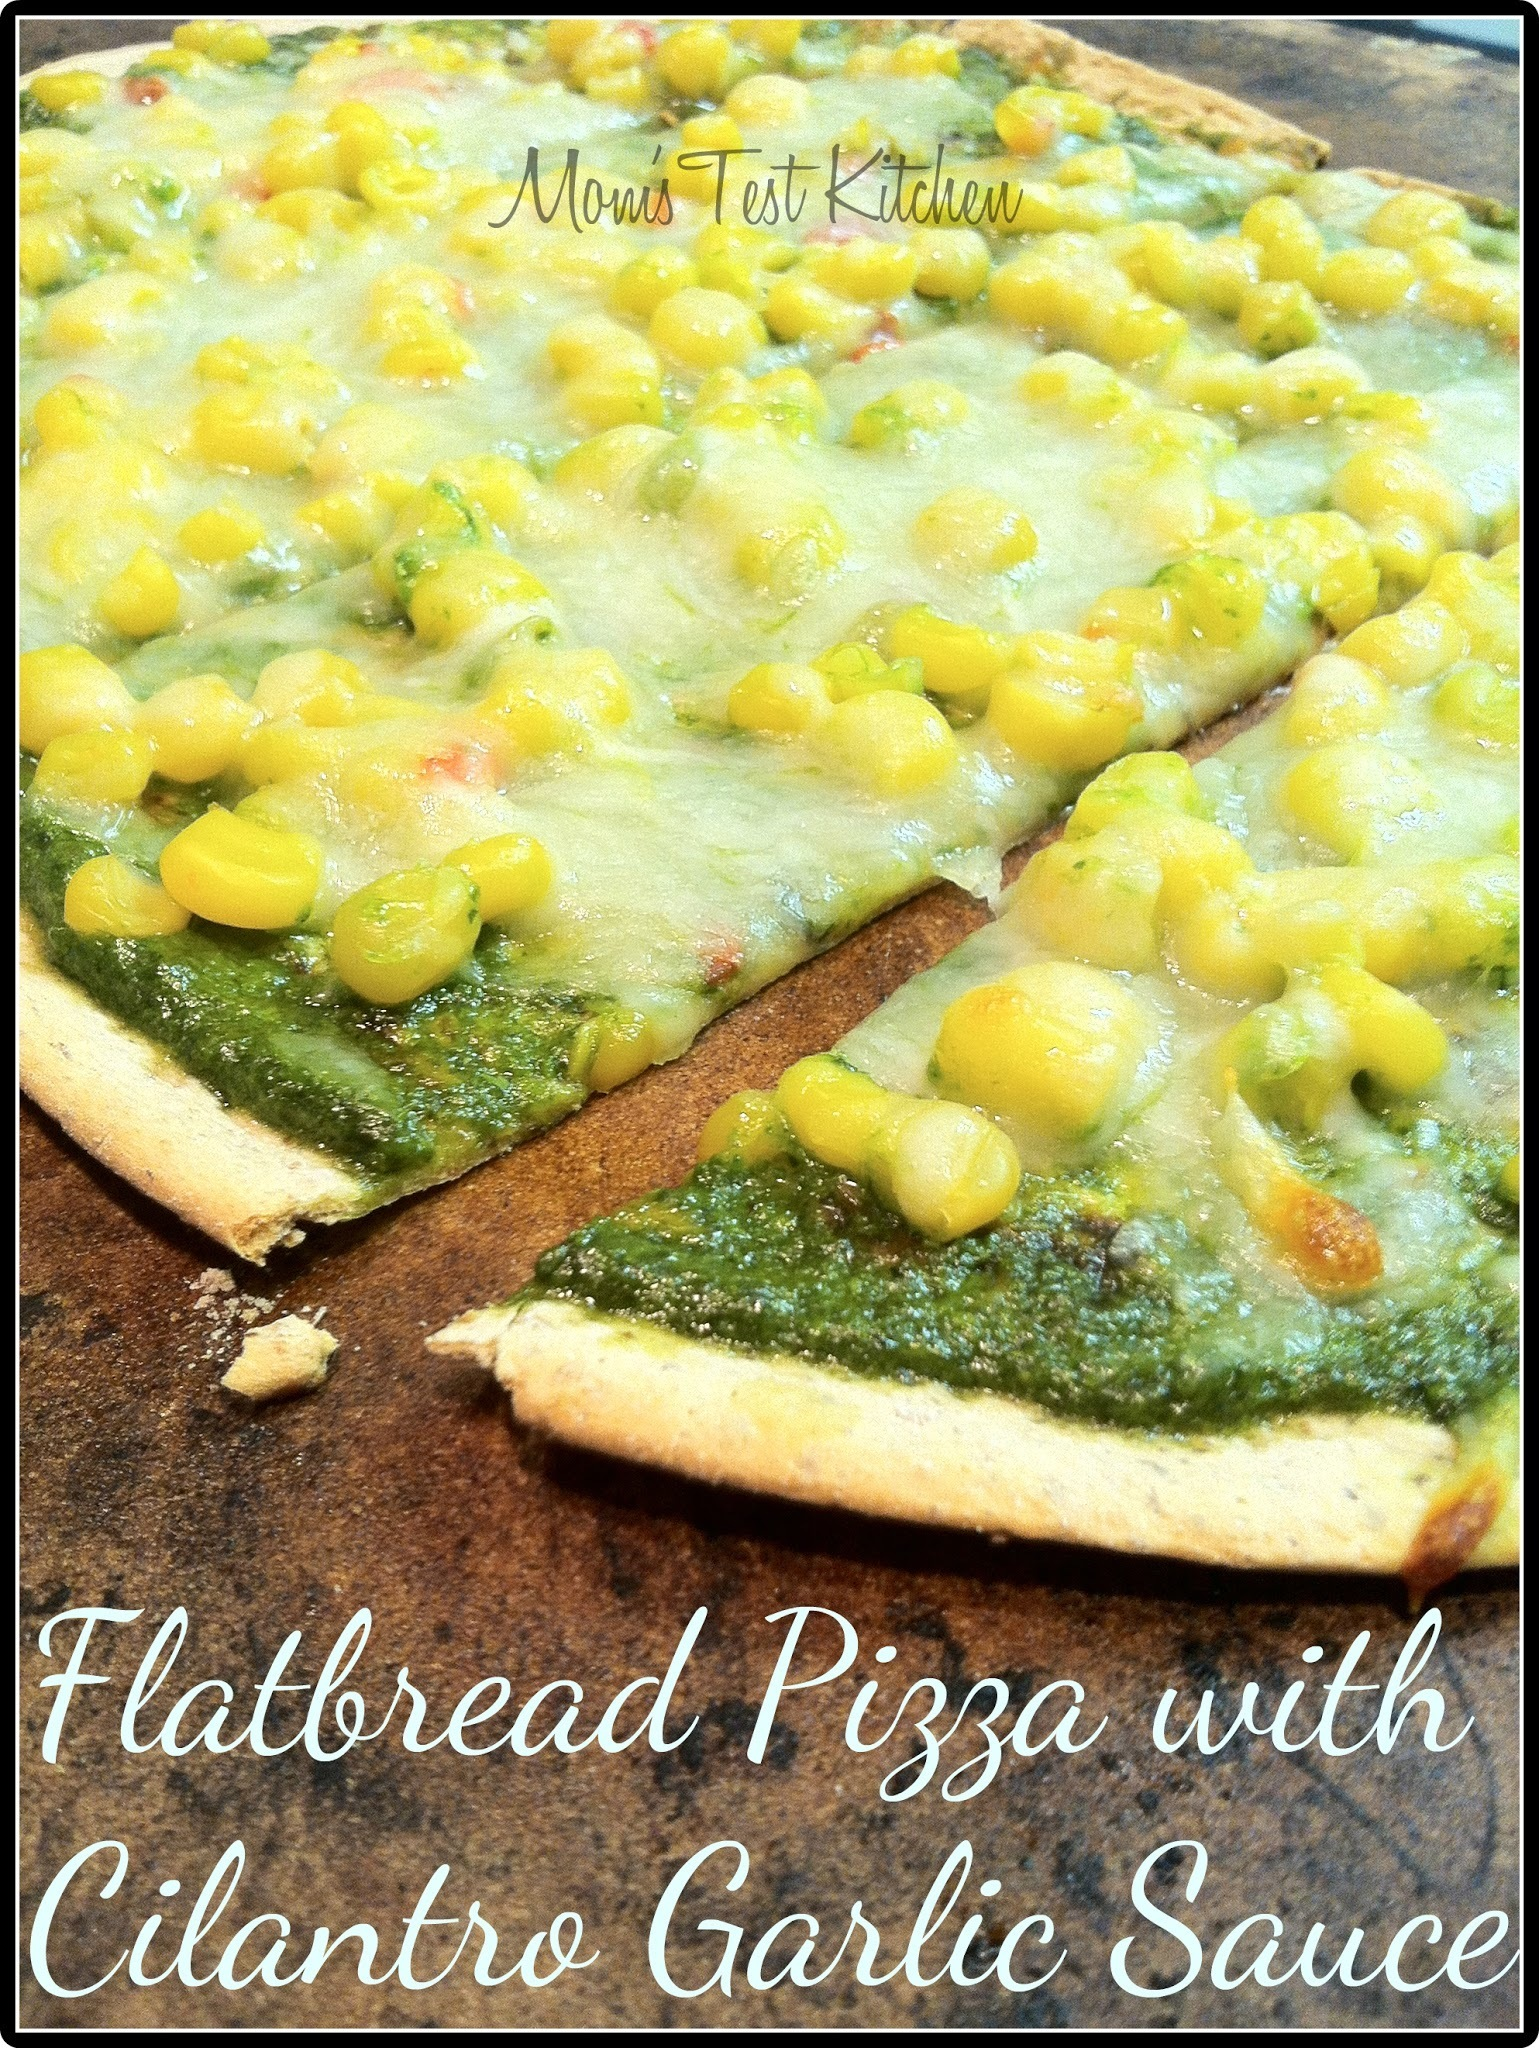 Flatbread Pizza with Cilantro Garlic Sauce #SundaySupper